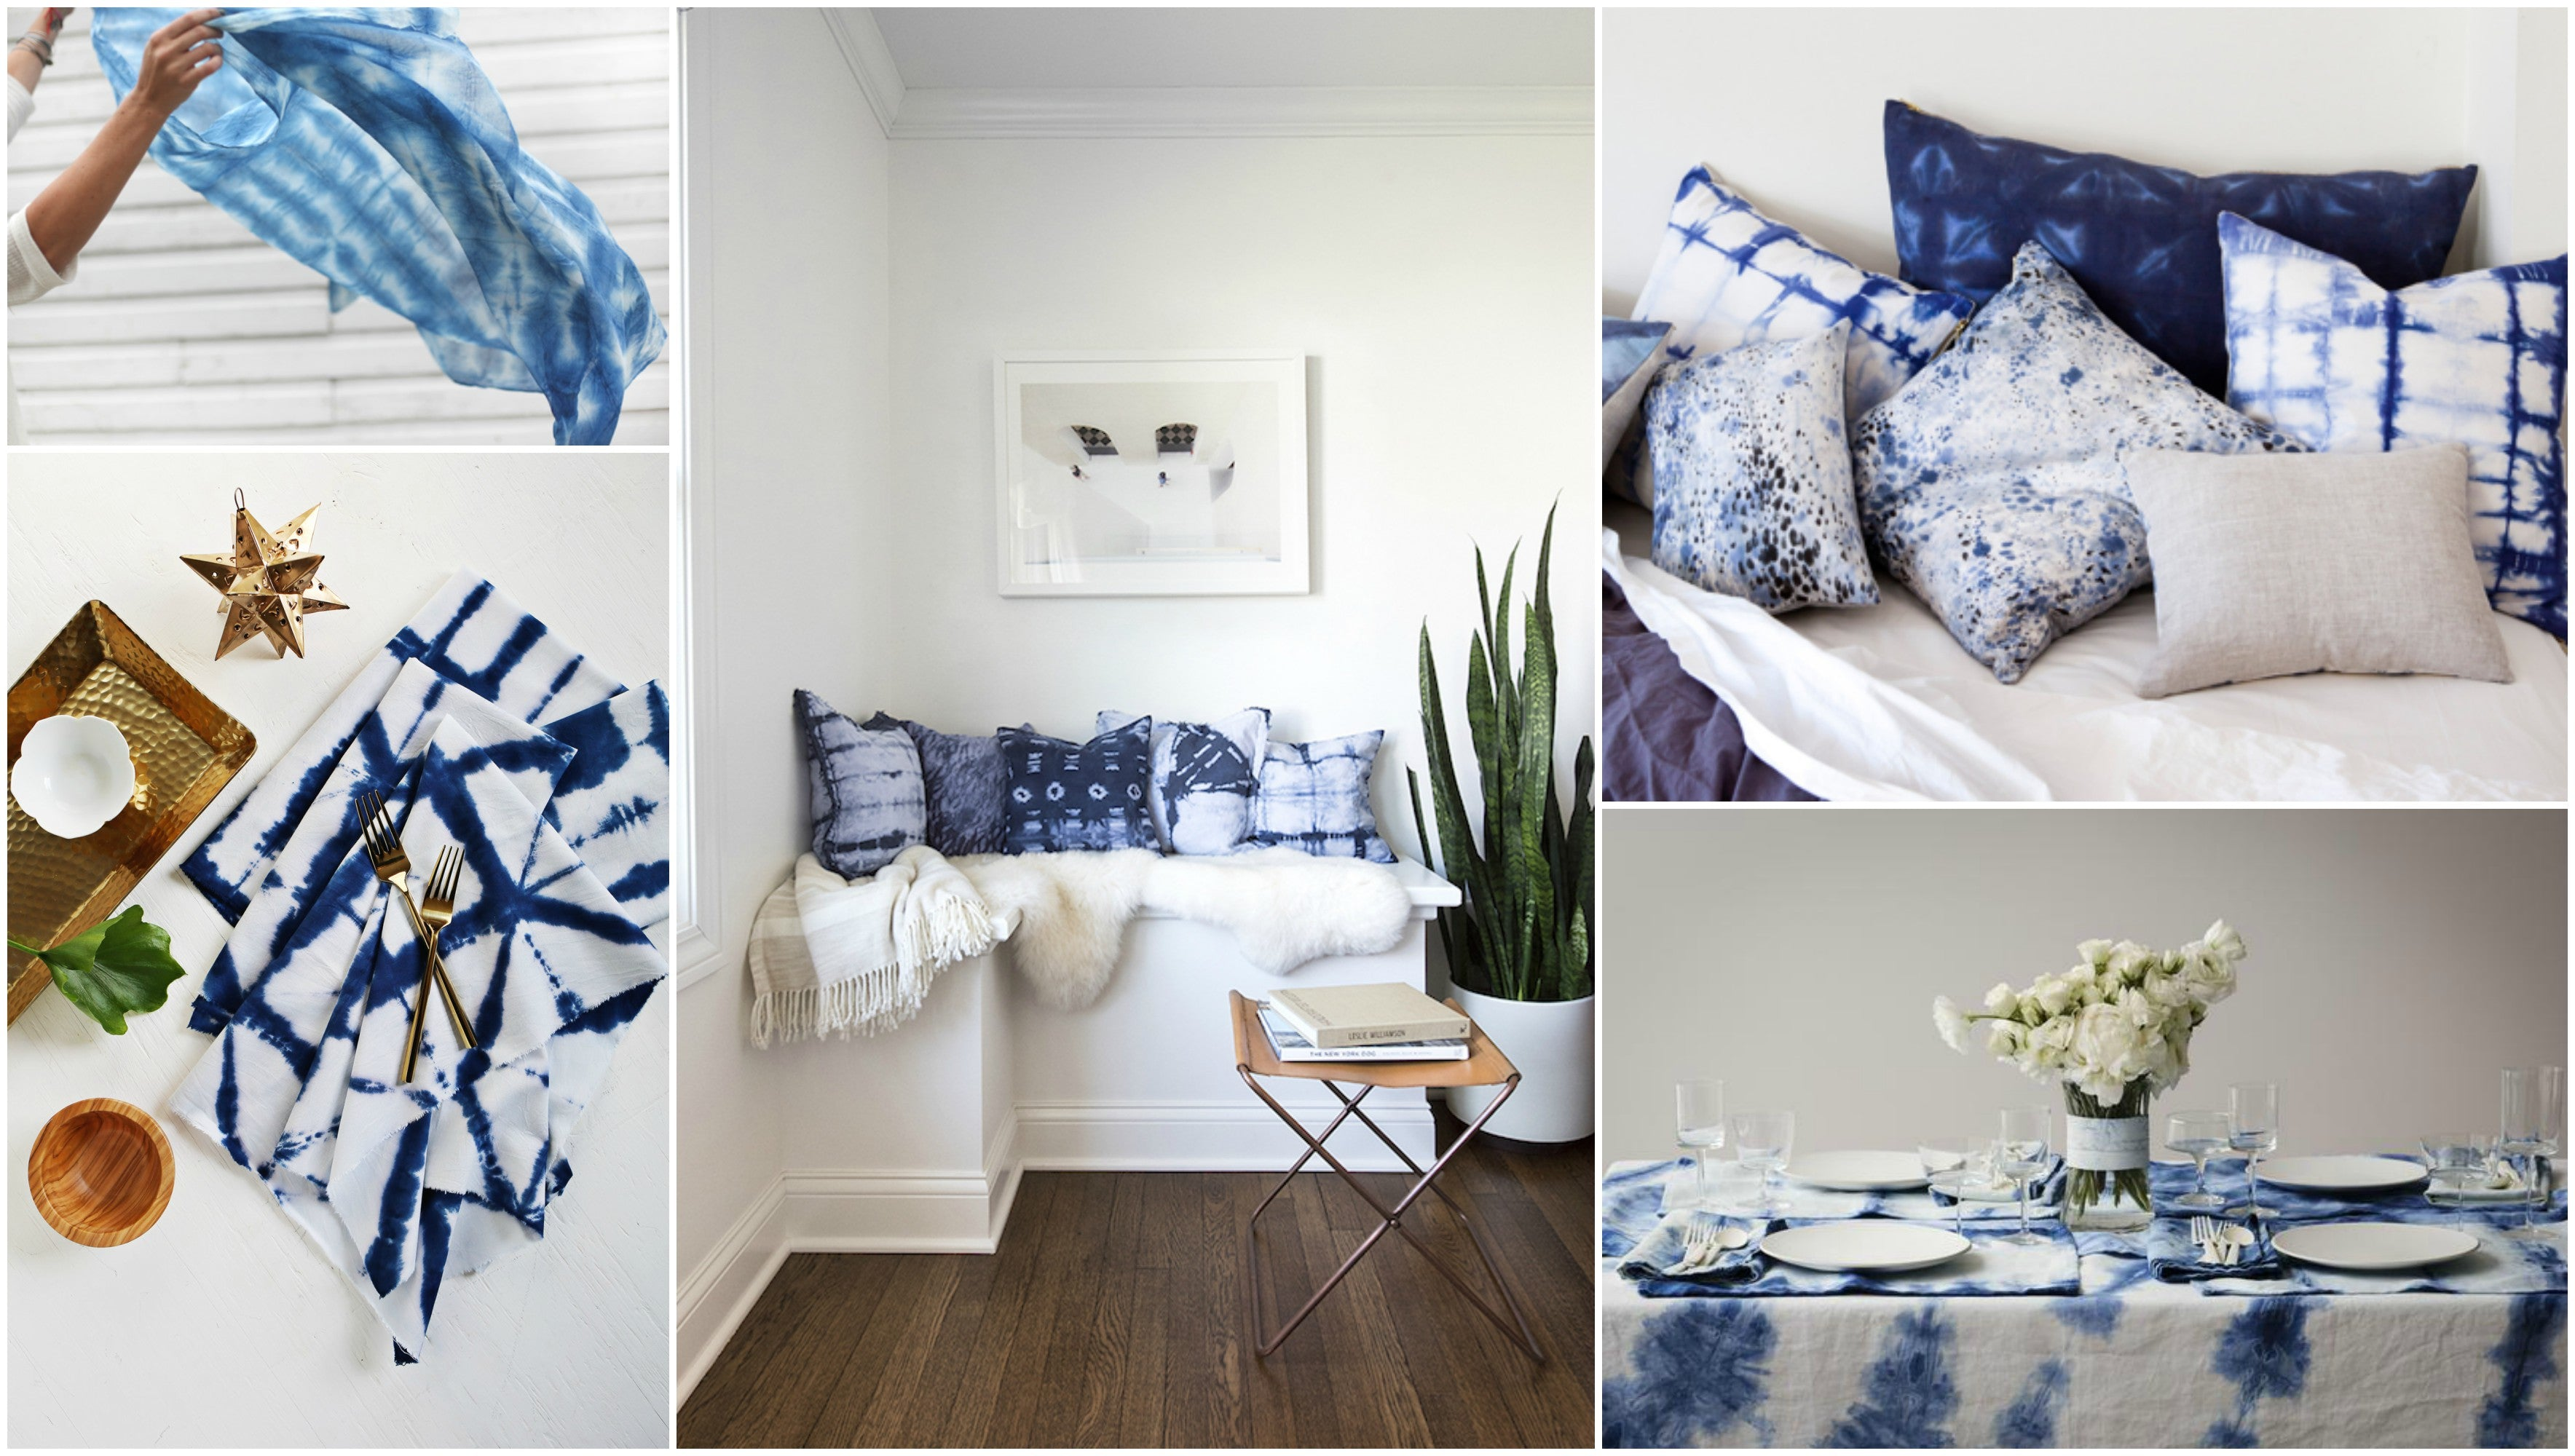 Shibori home decor is having a moment. Can't get enough of this trend.